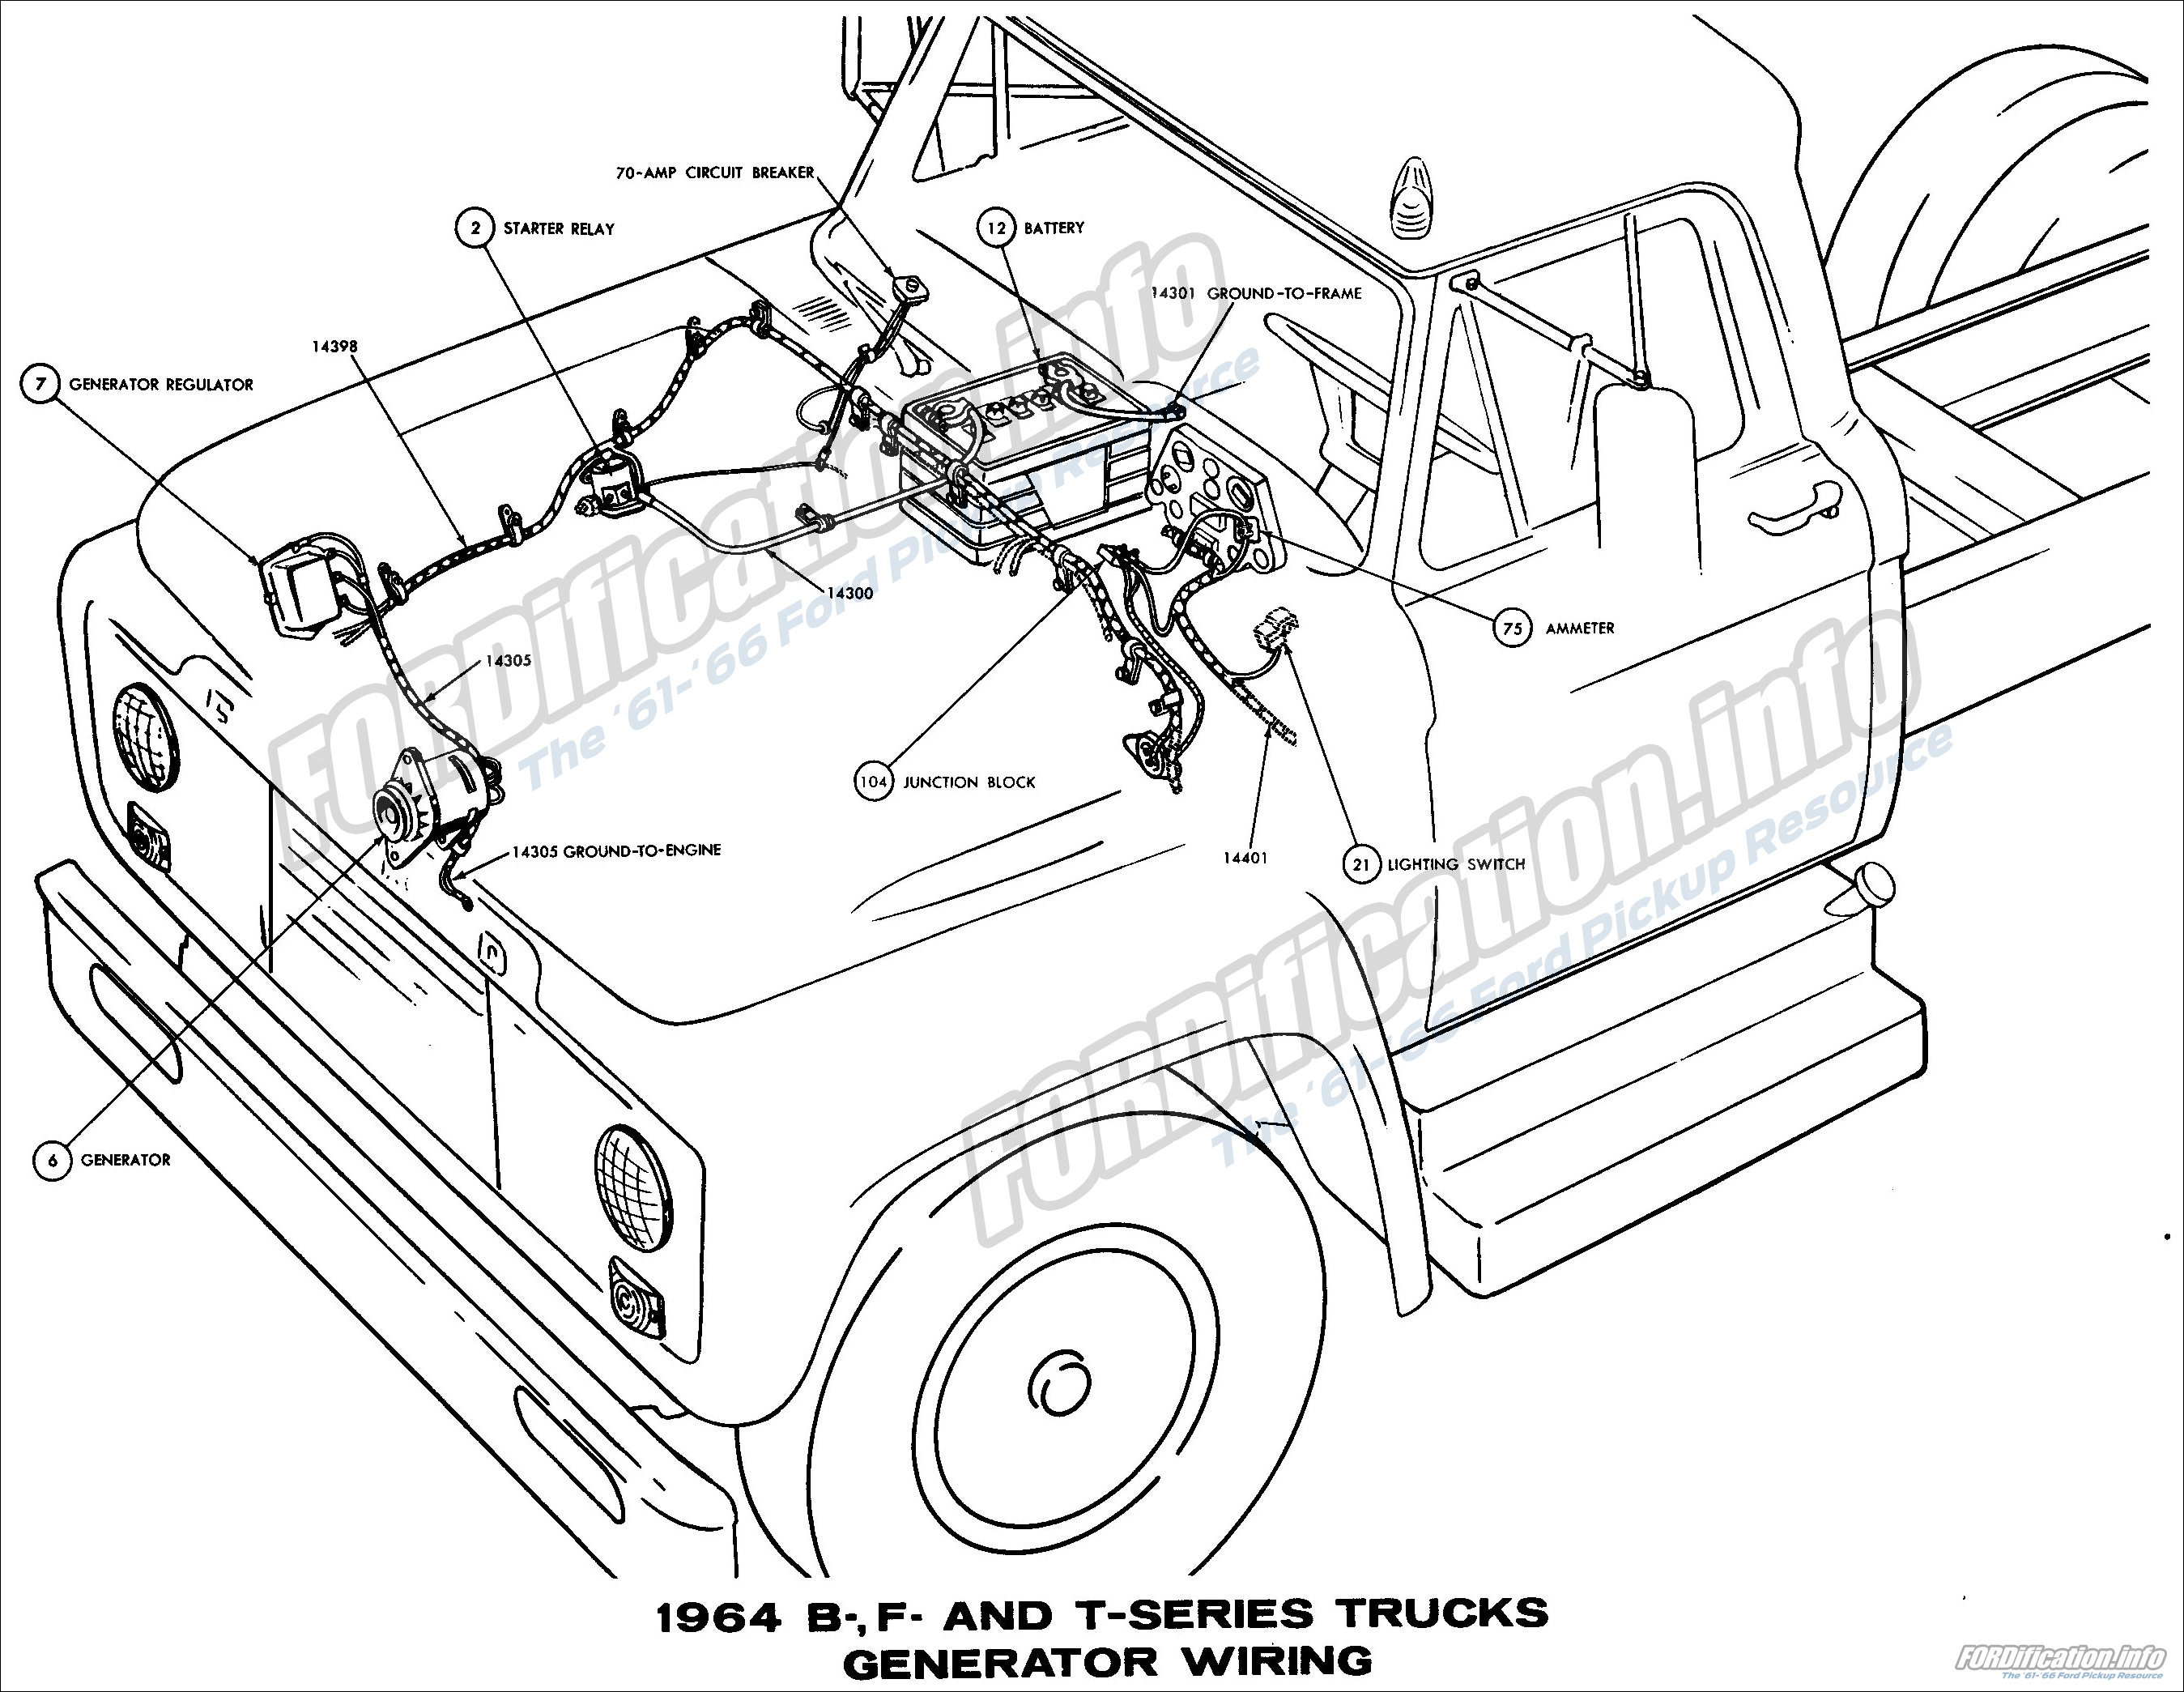 Transistorized Ignition Schematic, 1964 B-, F- and T-series Trucks Generator  Wiring